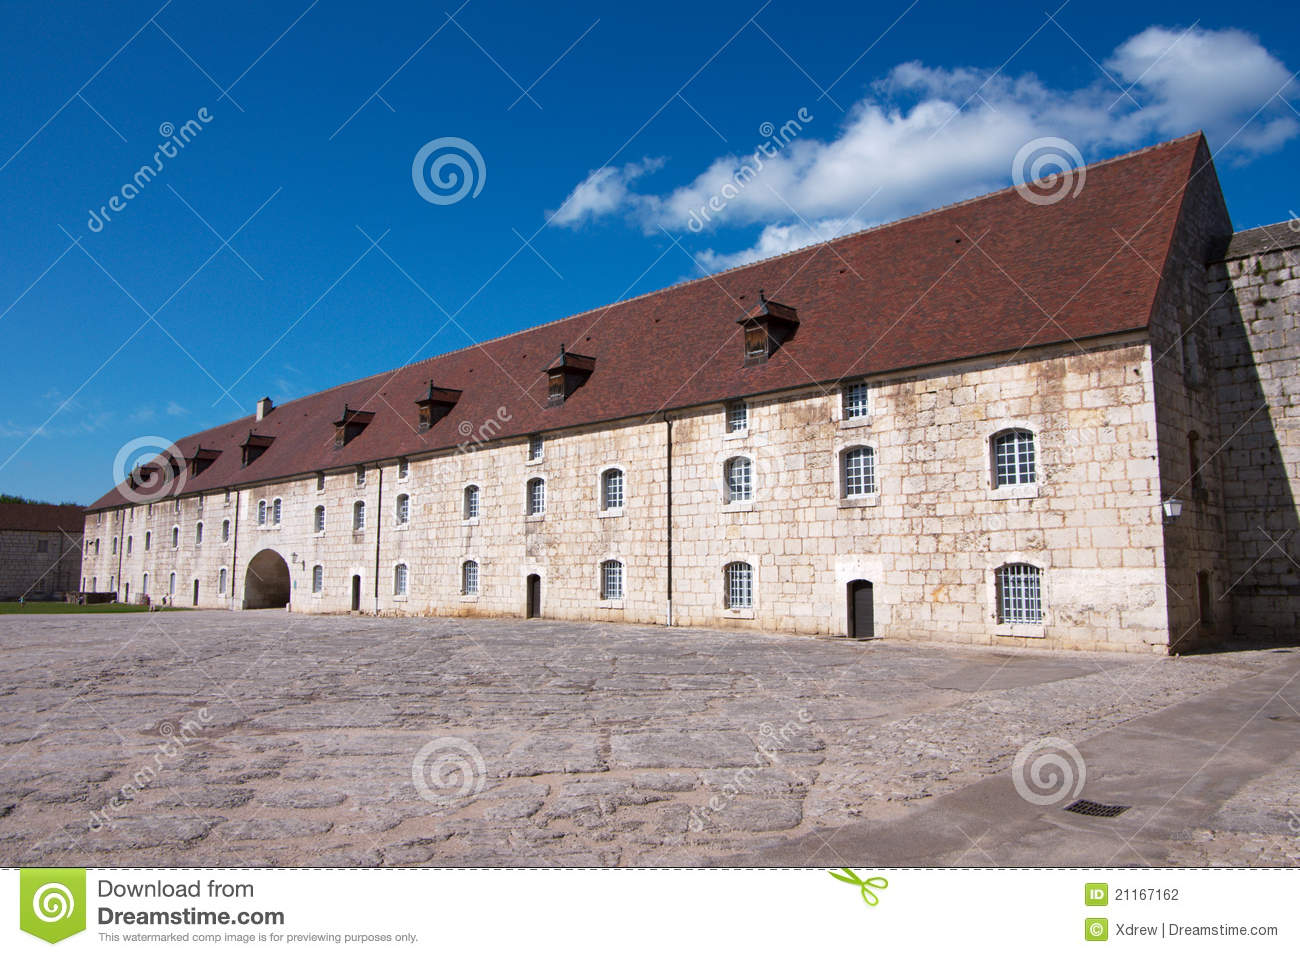 architecture of besancon citadel stock photography image 21167162. Black Bedroom Furniture Sets. Home Design Ideas